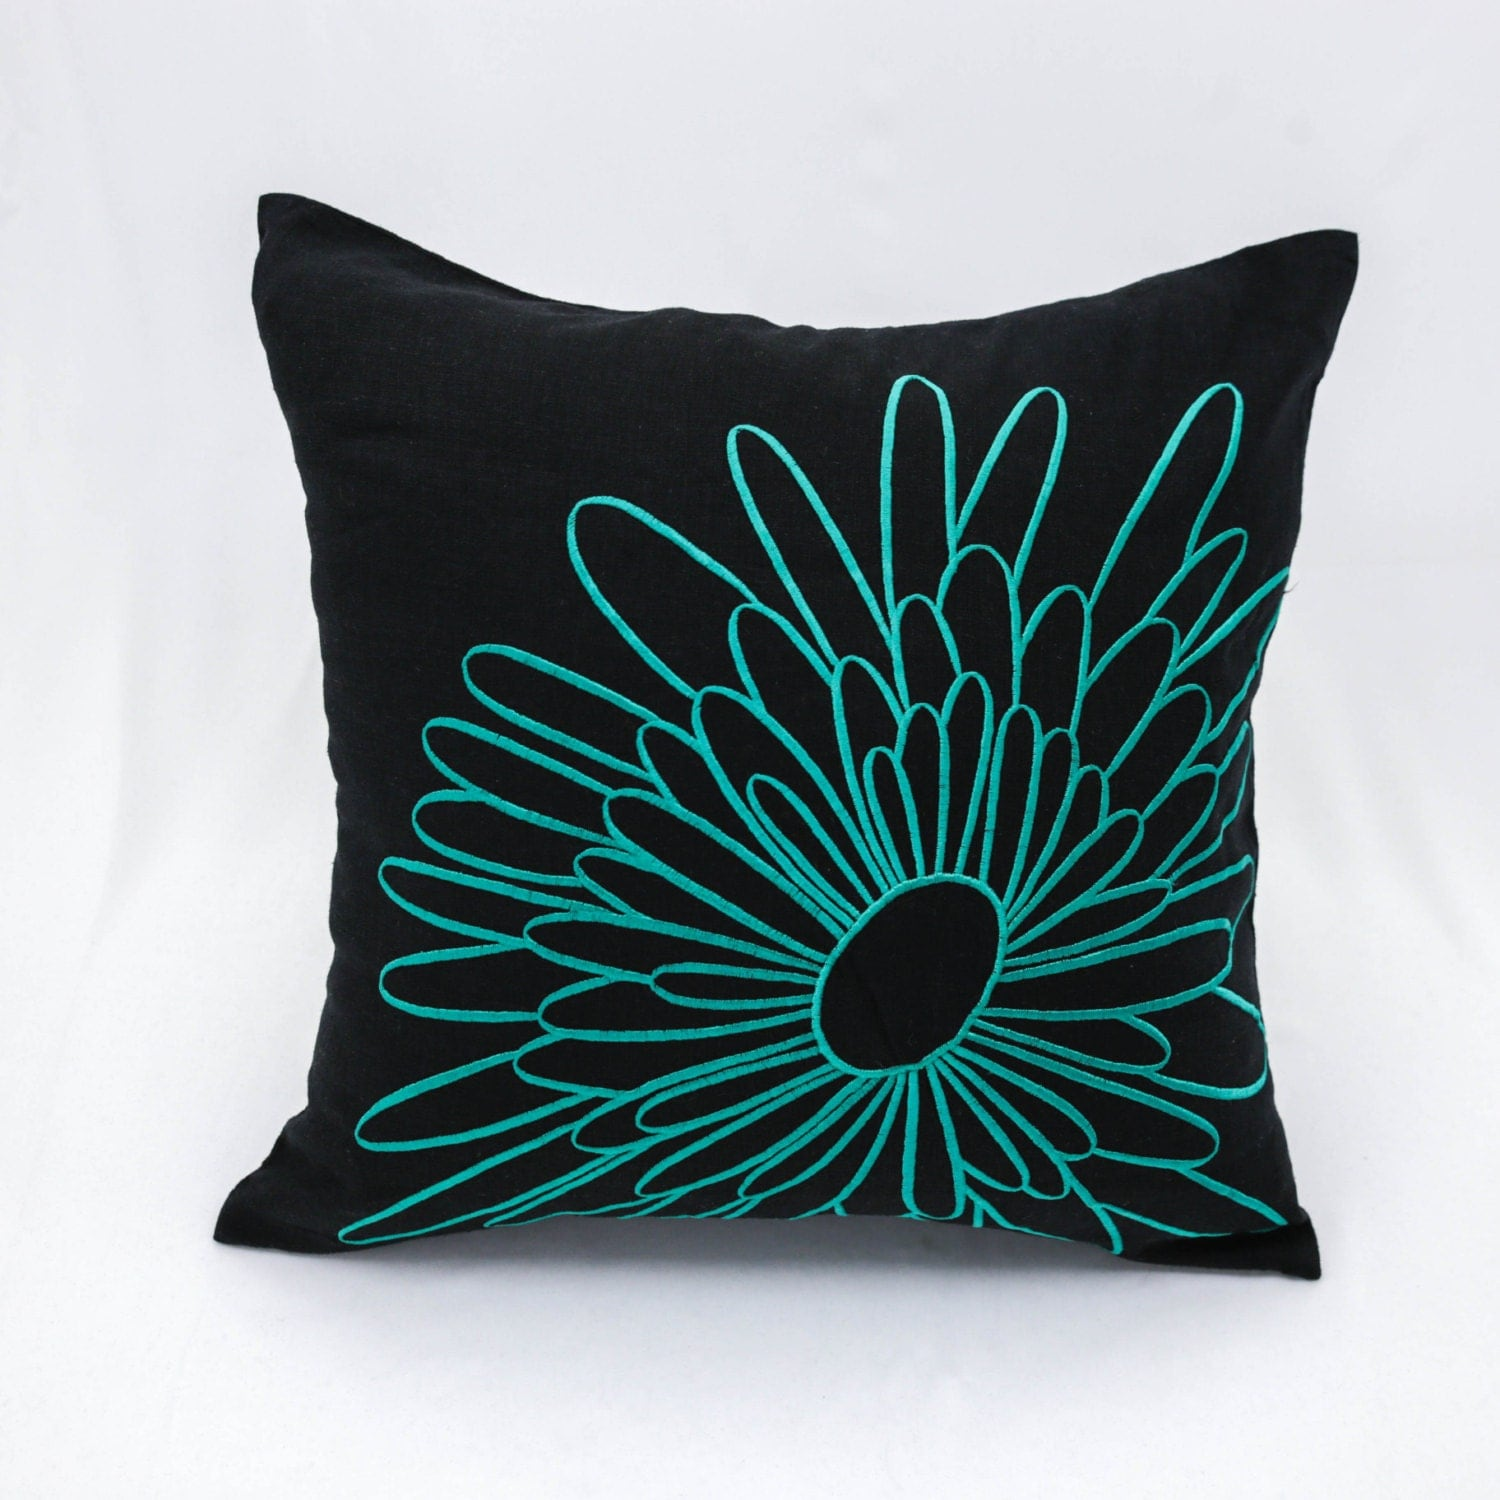 Teal Throw Pillow Cover Dark Brown Linen Teal Flower